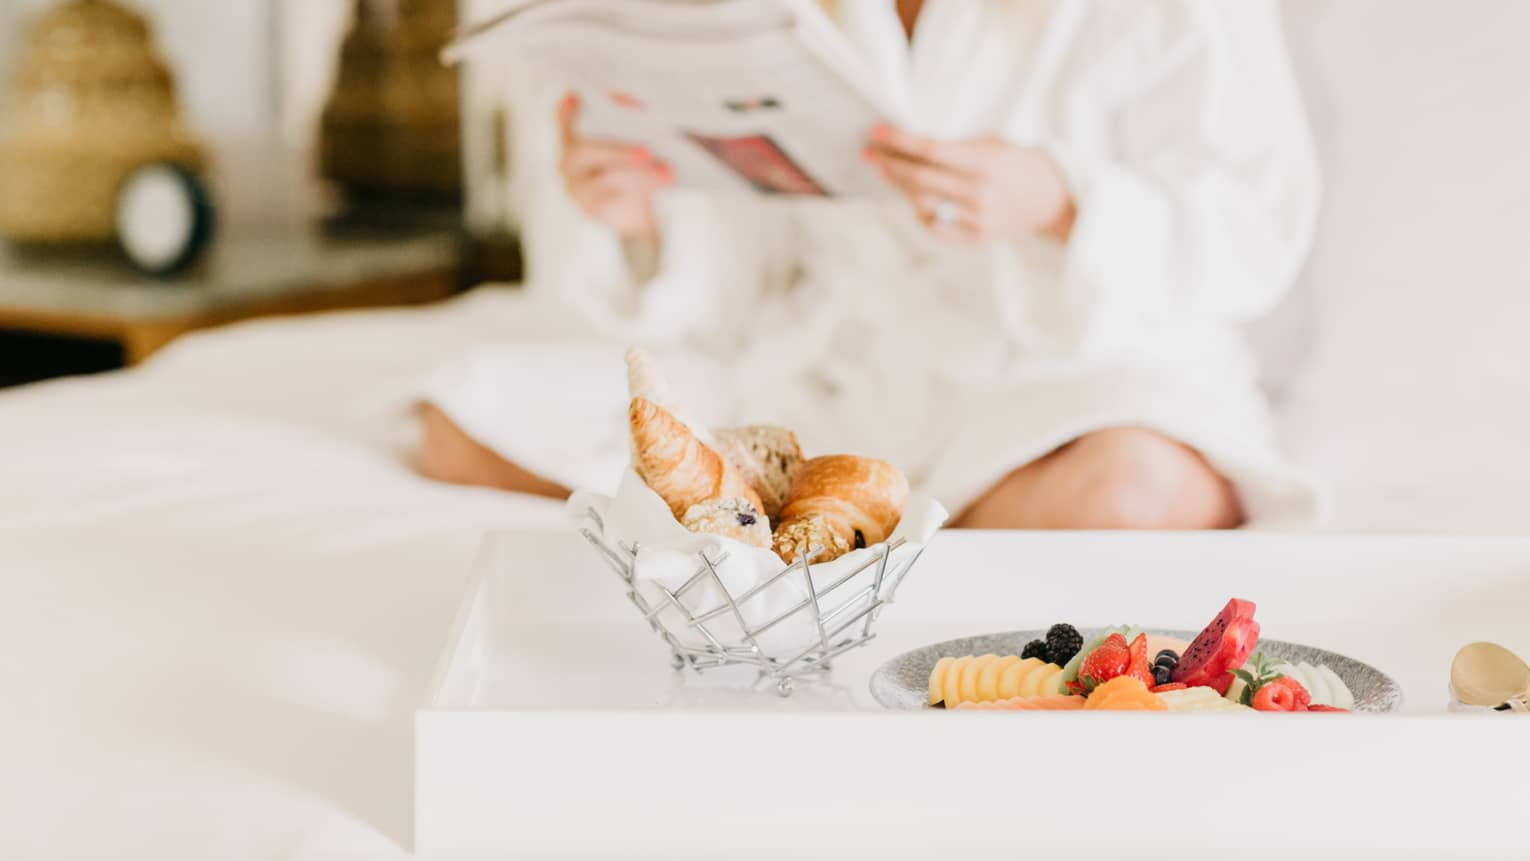 Pastries, fruit on in room dining tray, woman wearing white bath robe reads in background